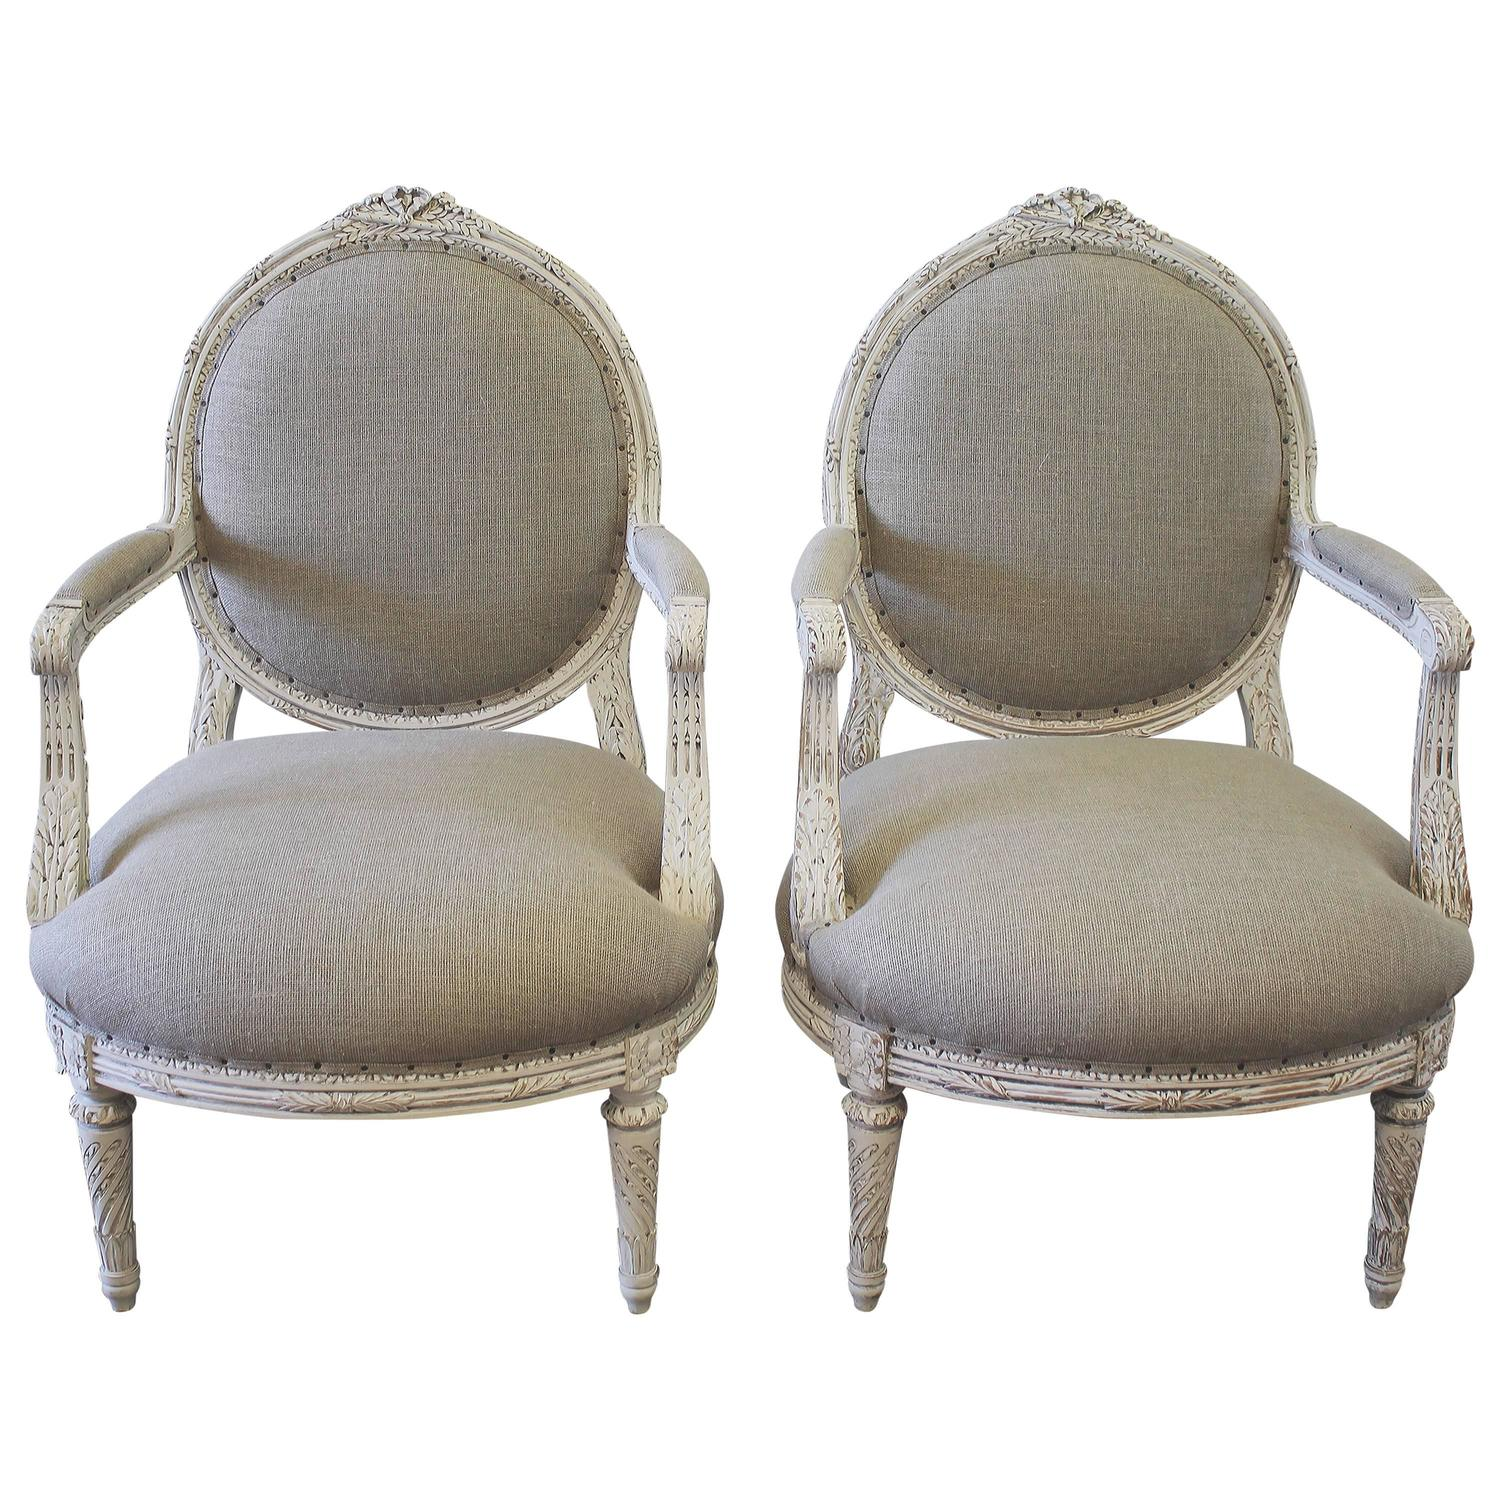 Louis XVI Style French Painted Armchairs In Nubby Linen For Sale At 1stdibs